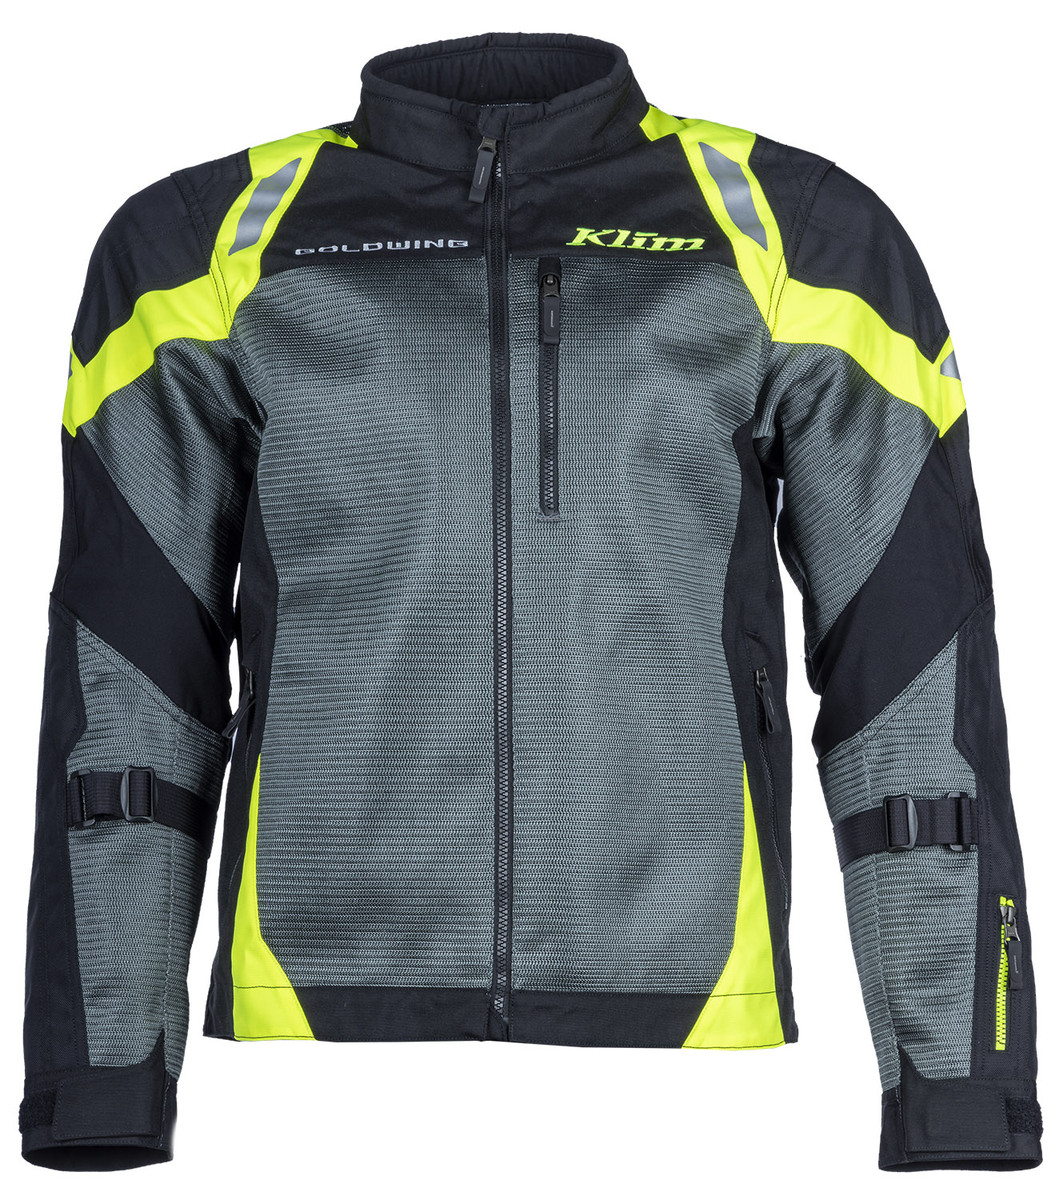 The Best Summer Motorcycle Jacket Is ...